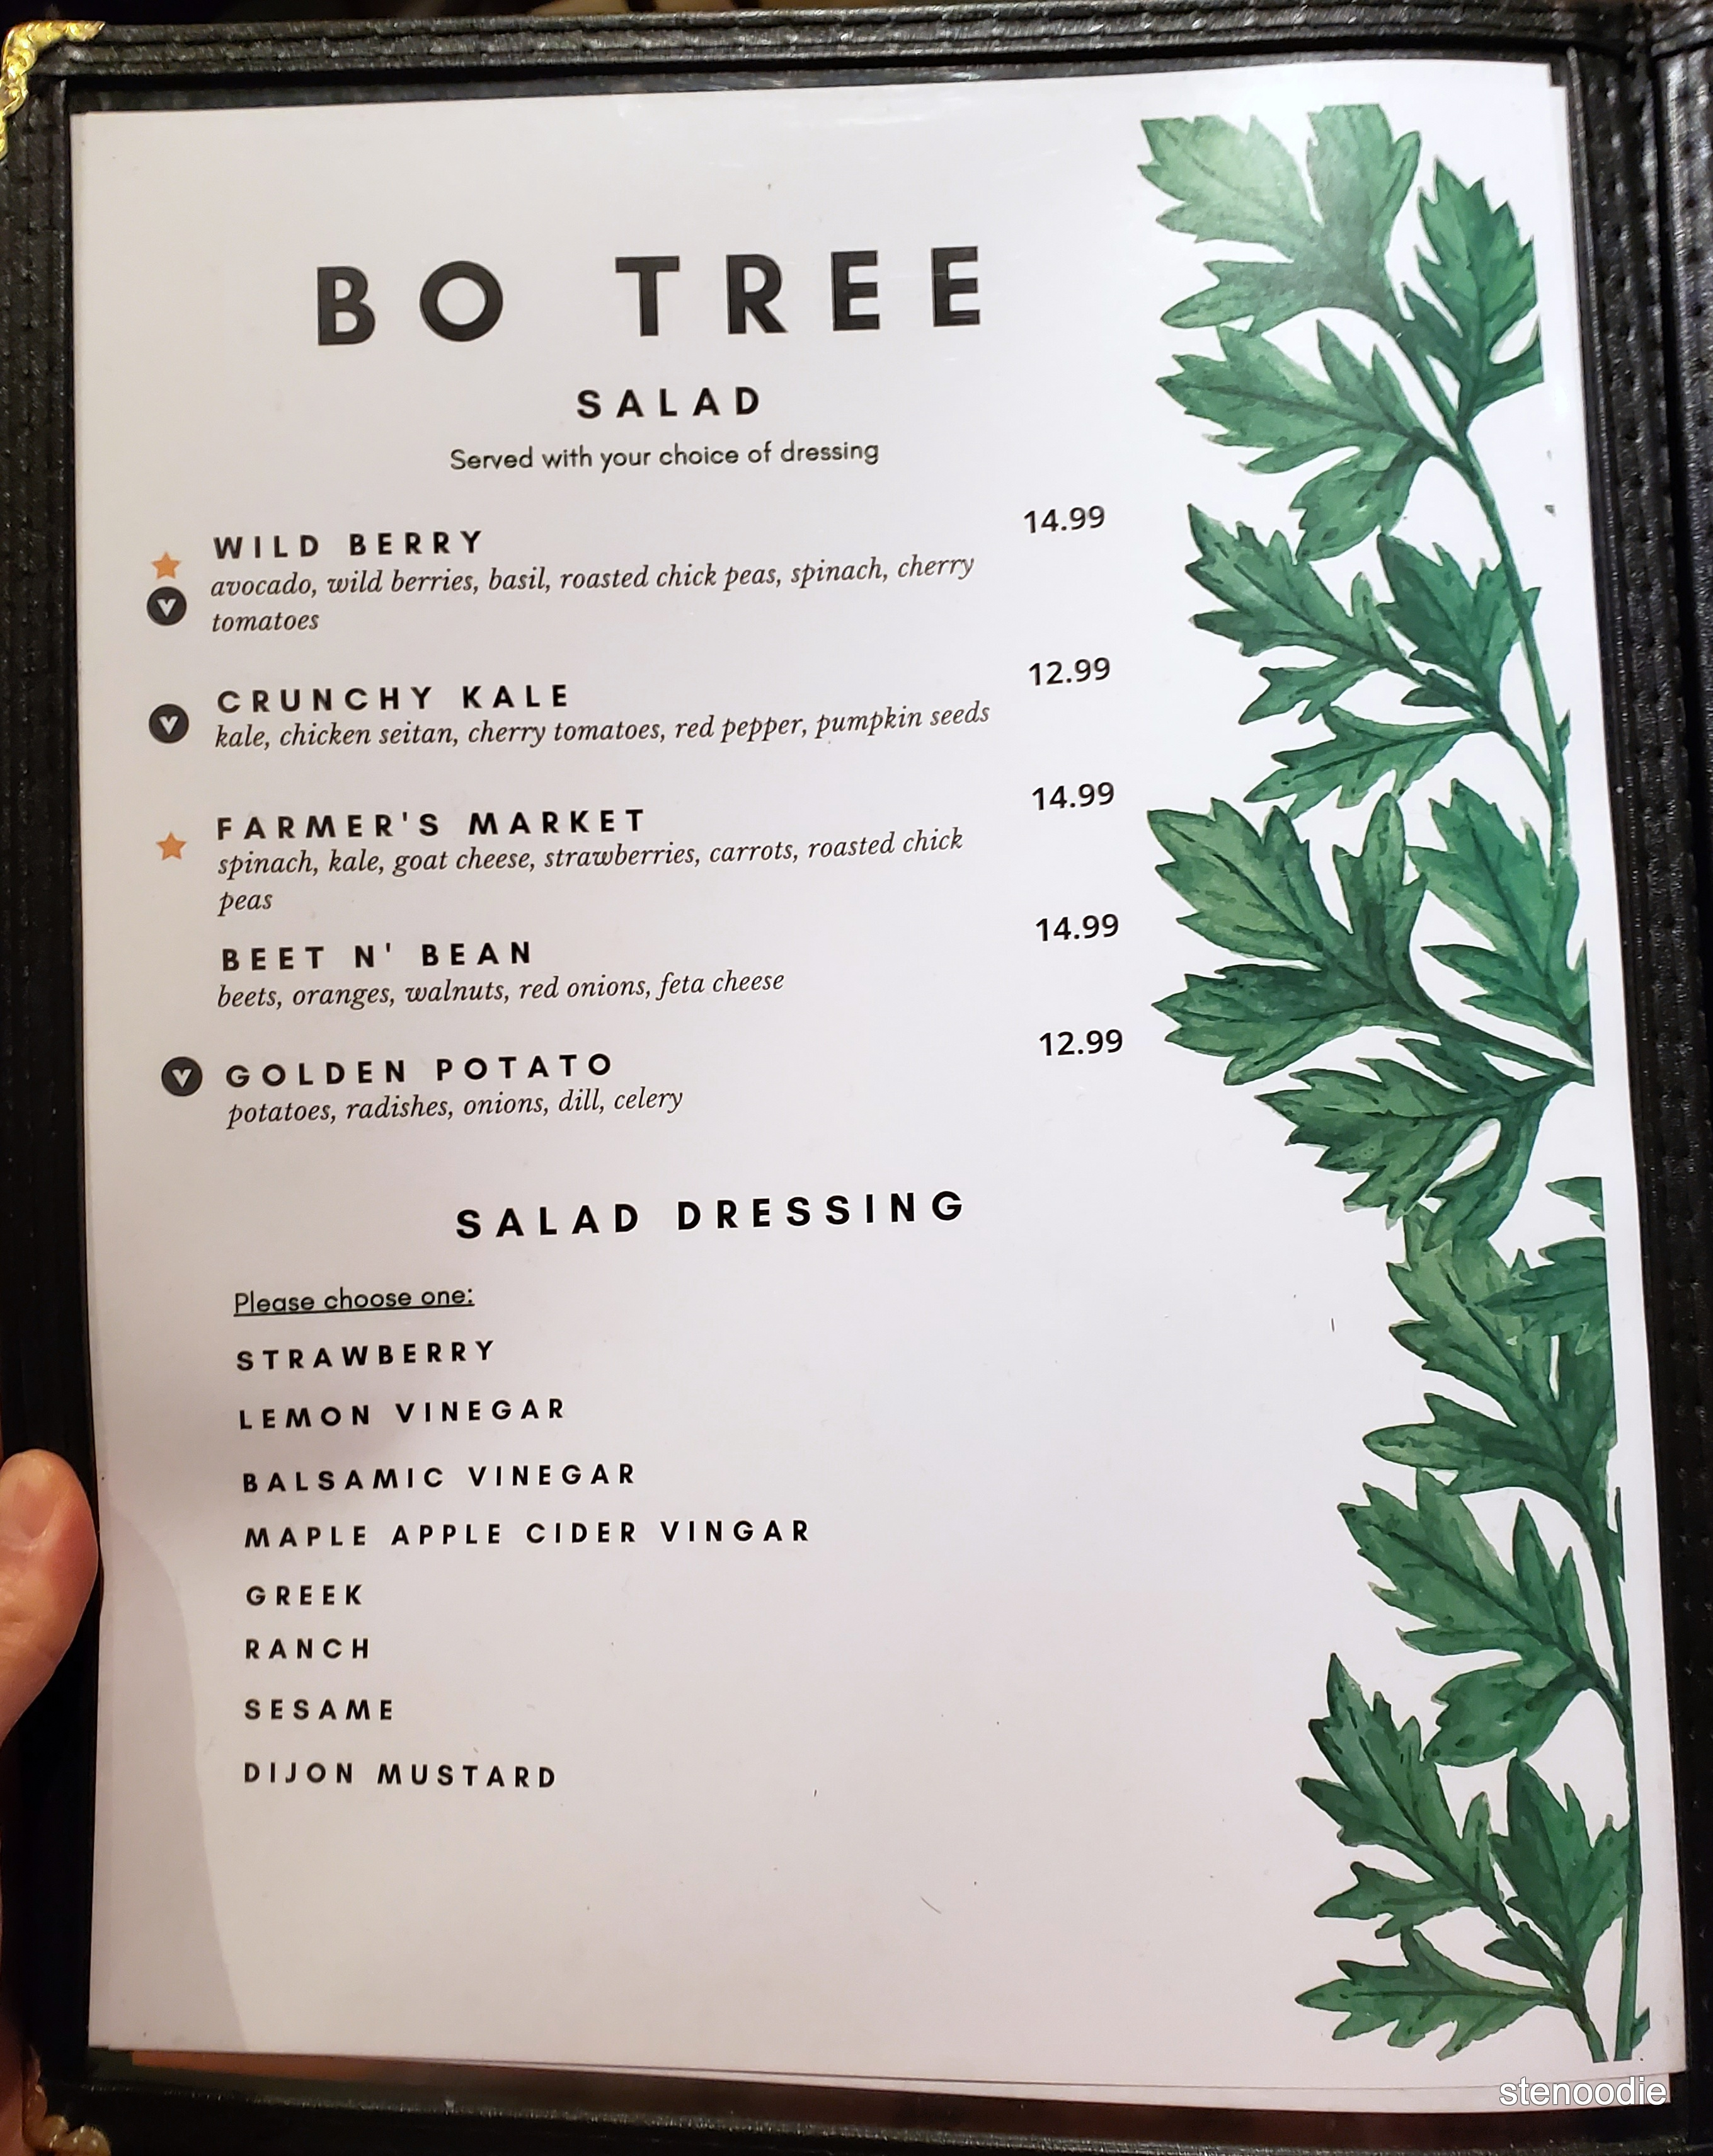 Bo Tree Plant-Based Cuisine menu and prices